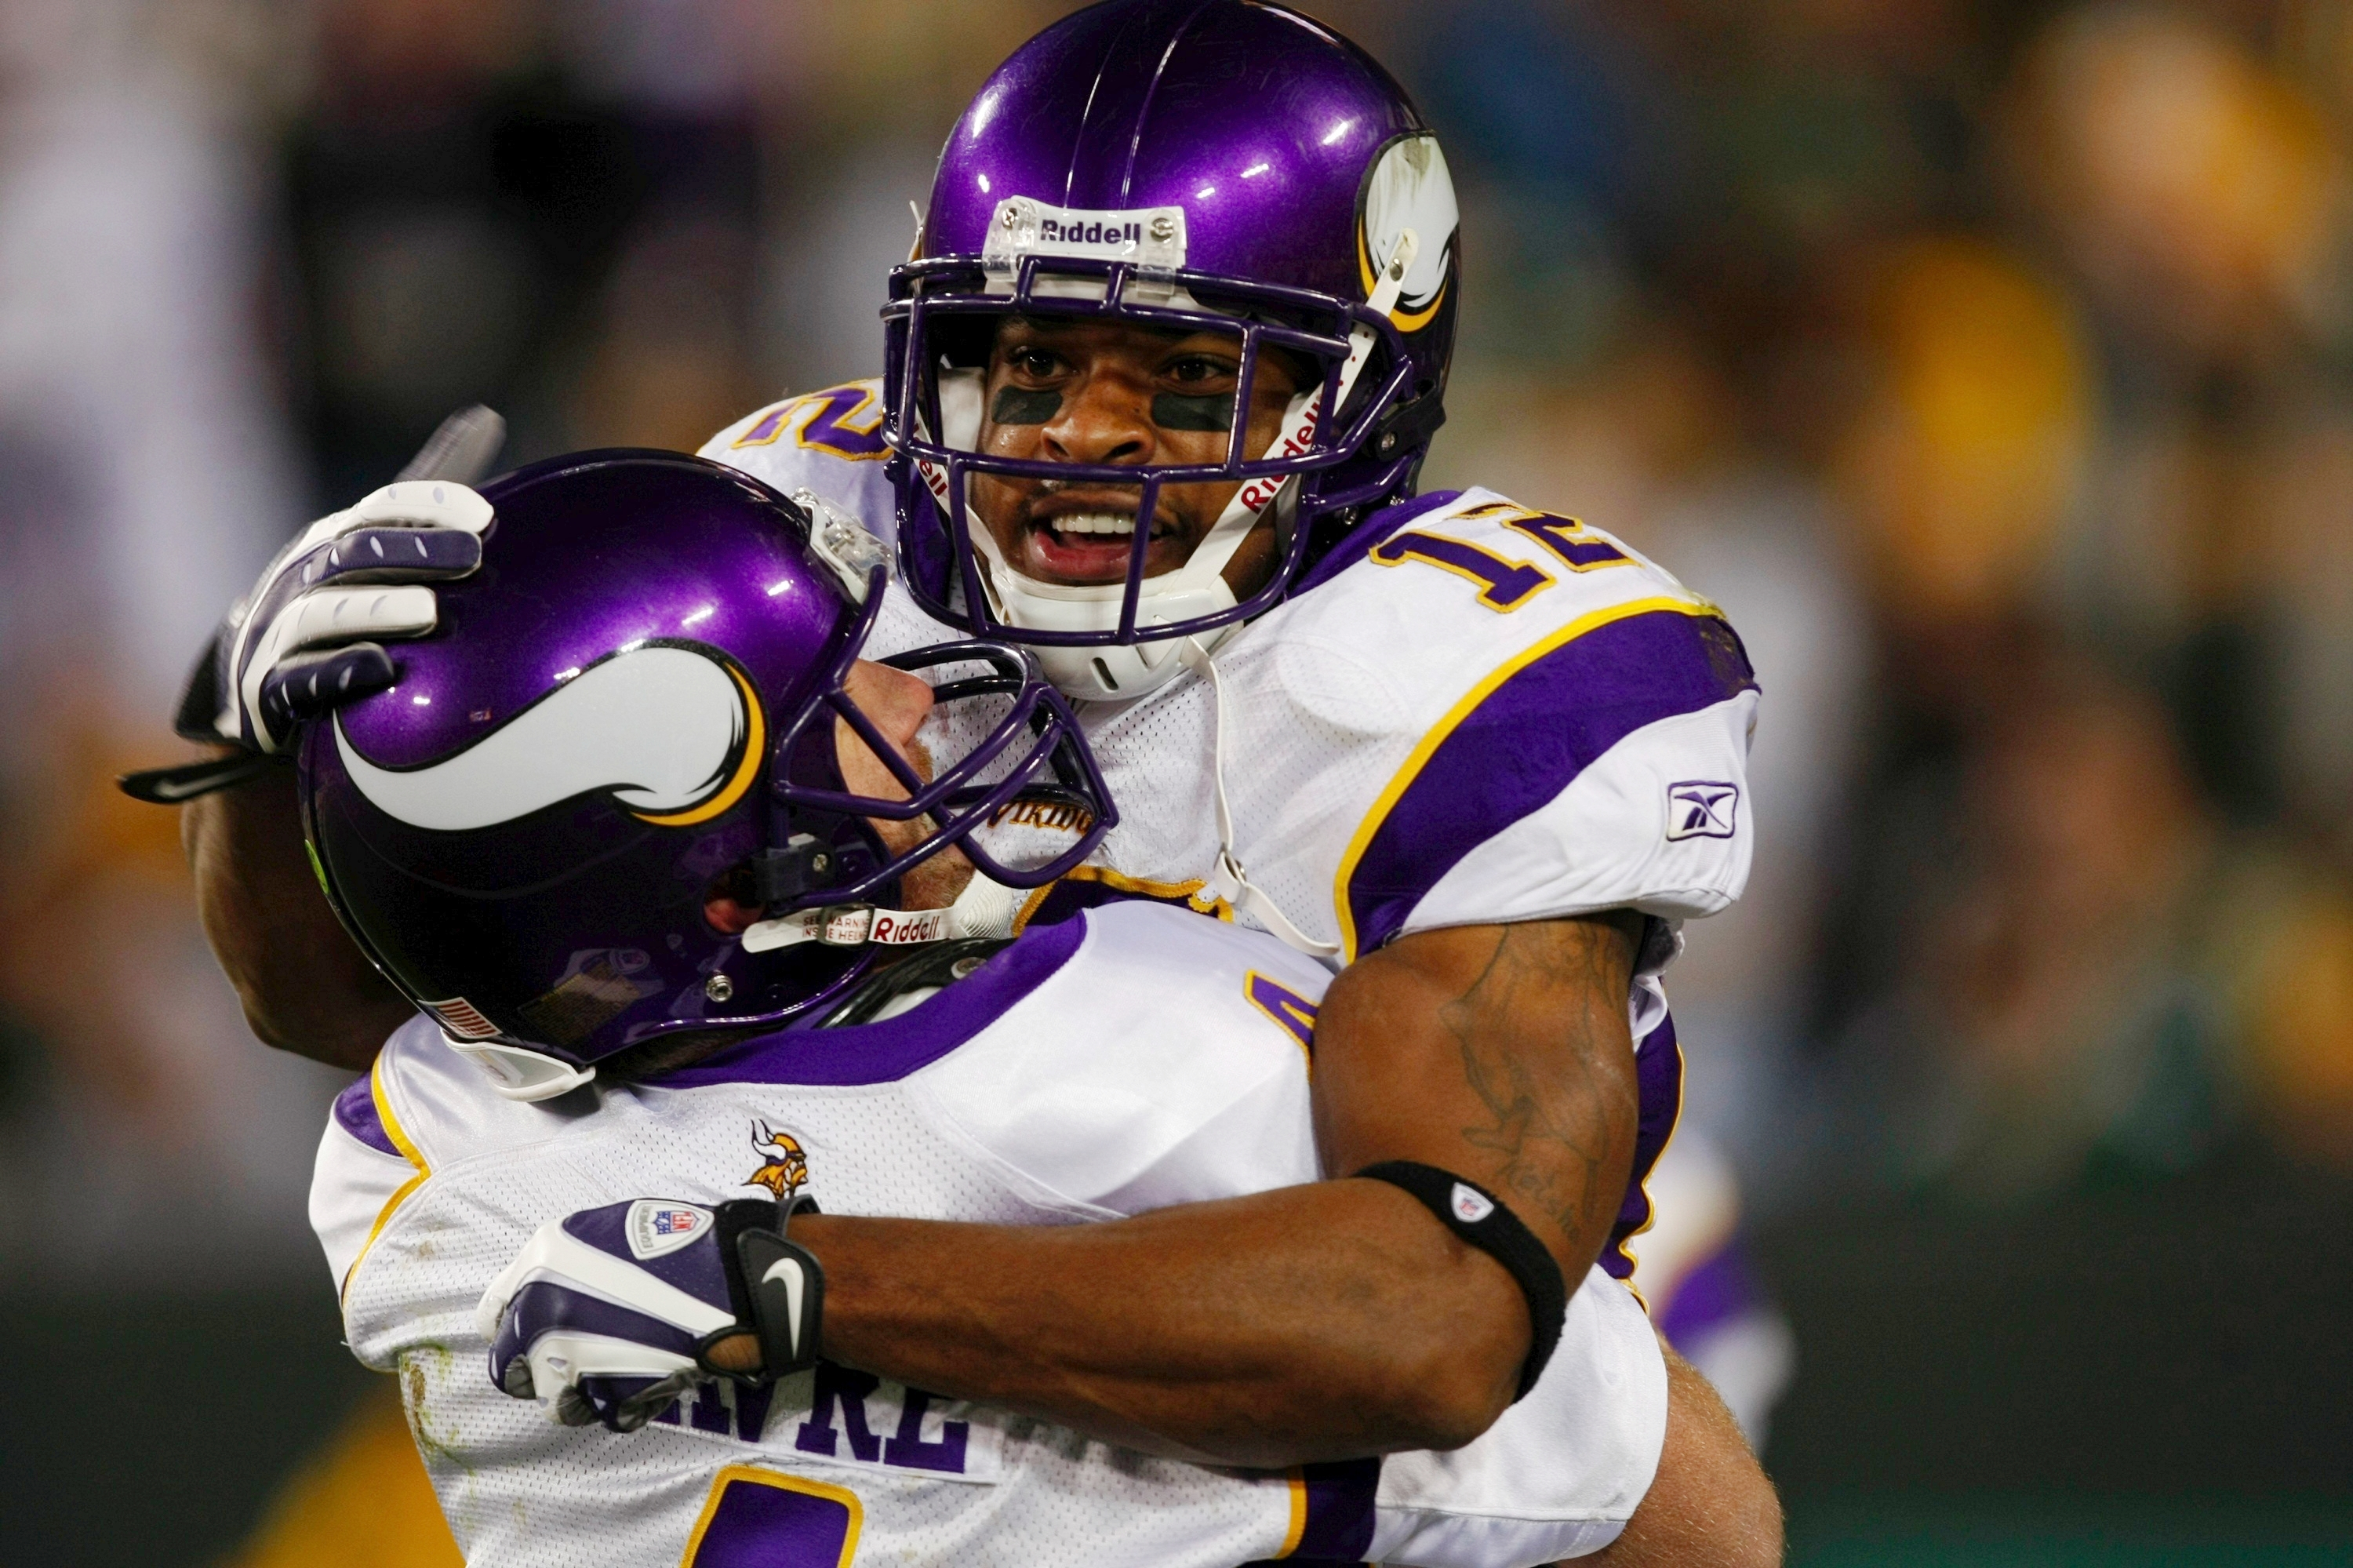 GREEN BAY, WI - NOVEMBER 01: Quarterback Brett Favre #4 of the Minnesota Vikings celebrates with teammate Percy Harvin #12 after a 51 yard touchdown pass during the third quarter of the game against the Green Bay Packers at Lambeau Field on November 1, 20